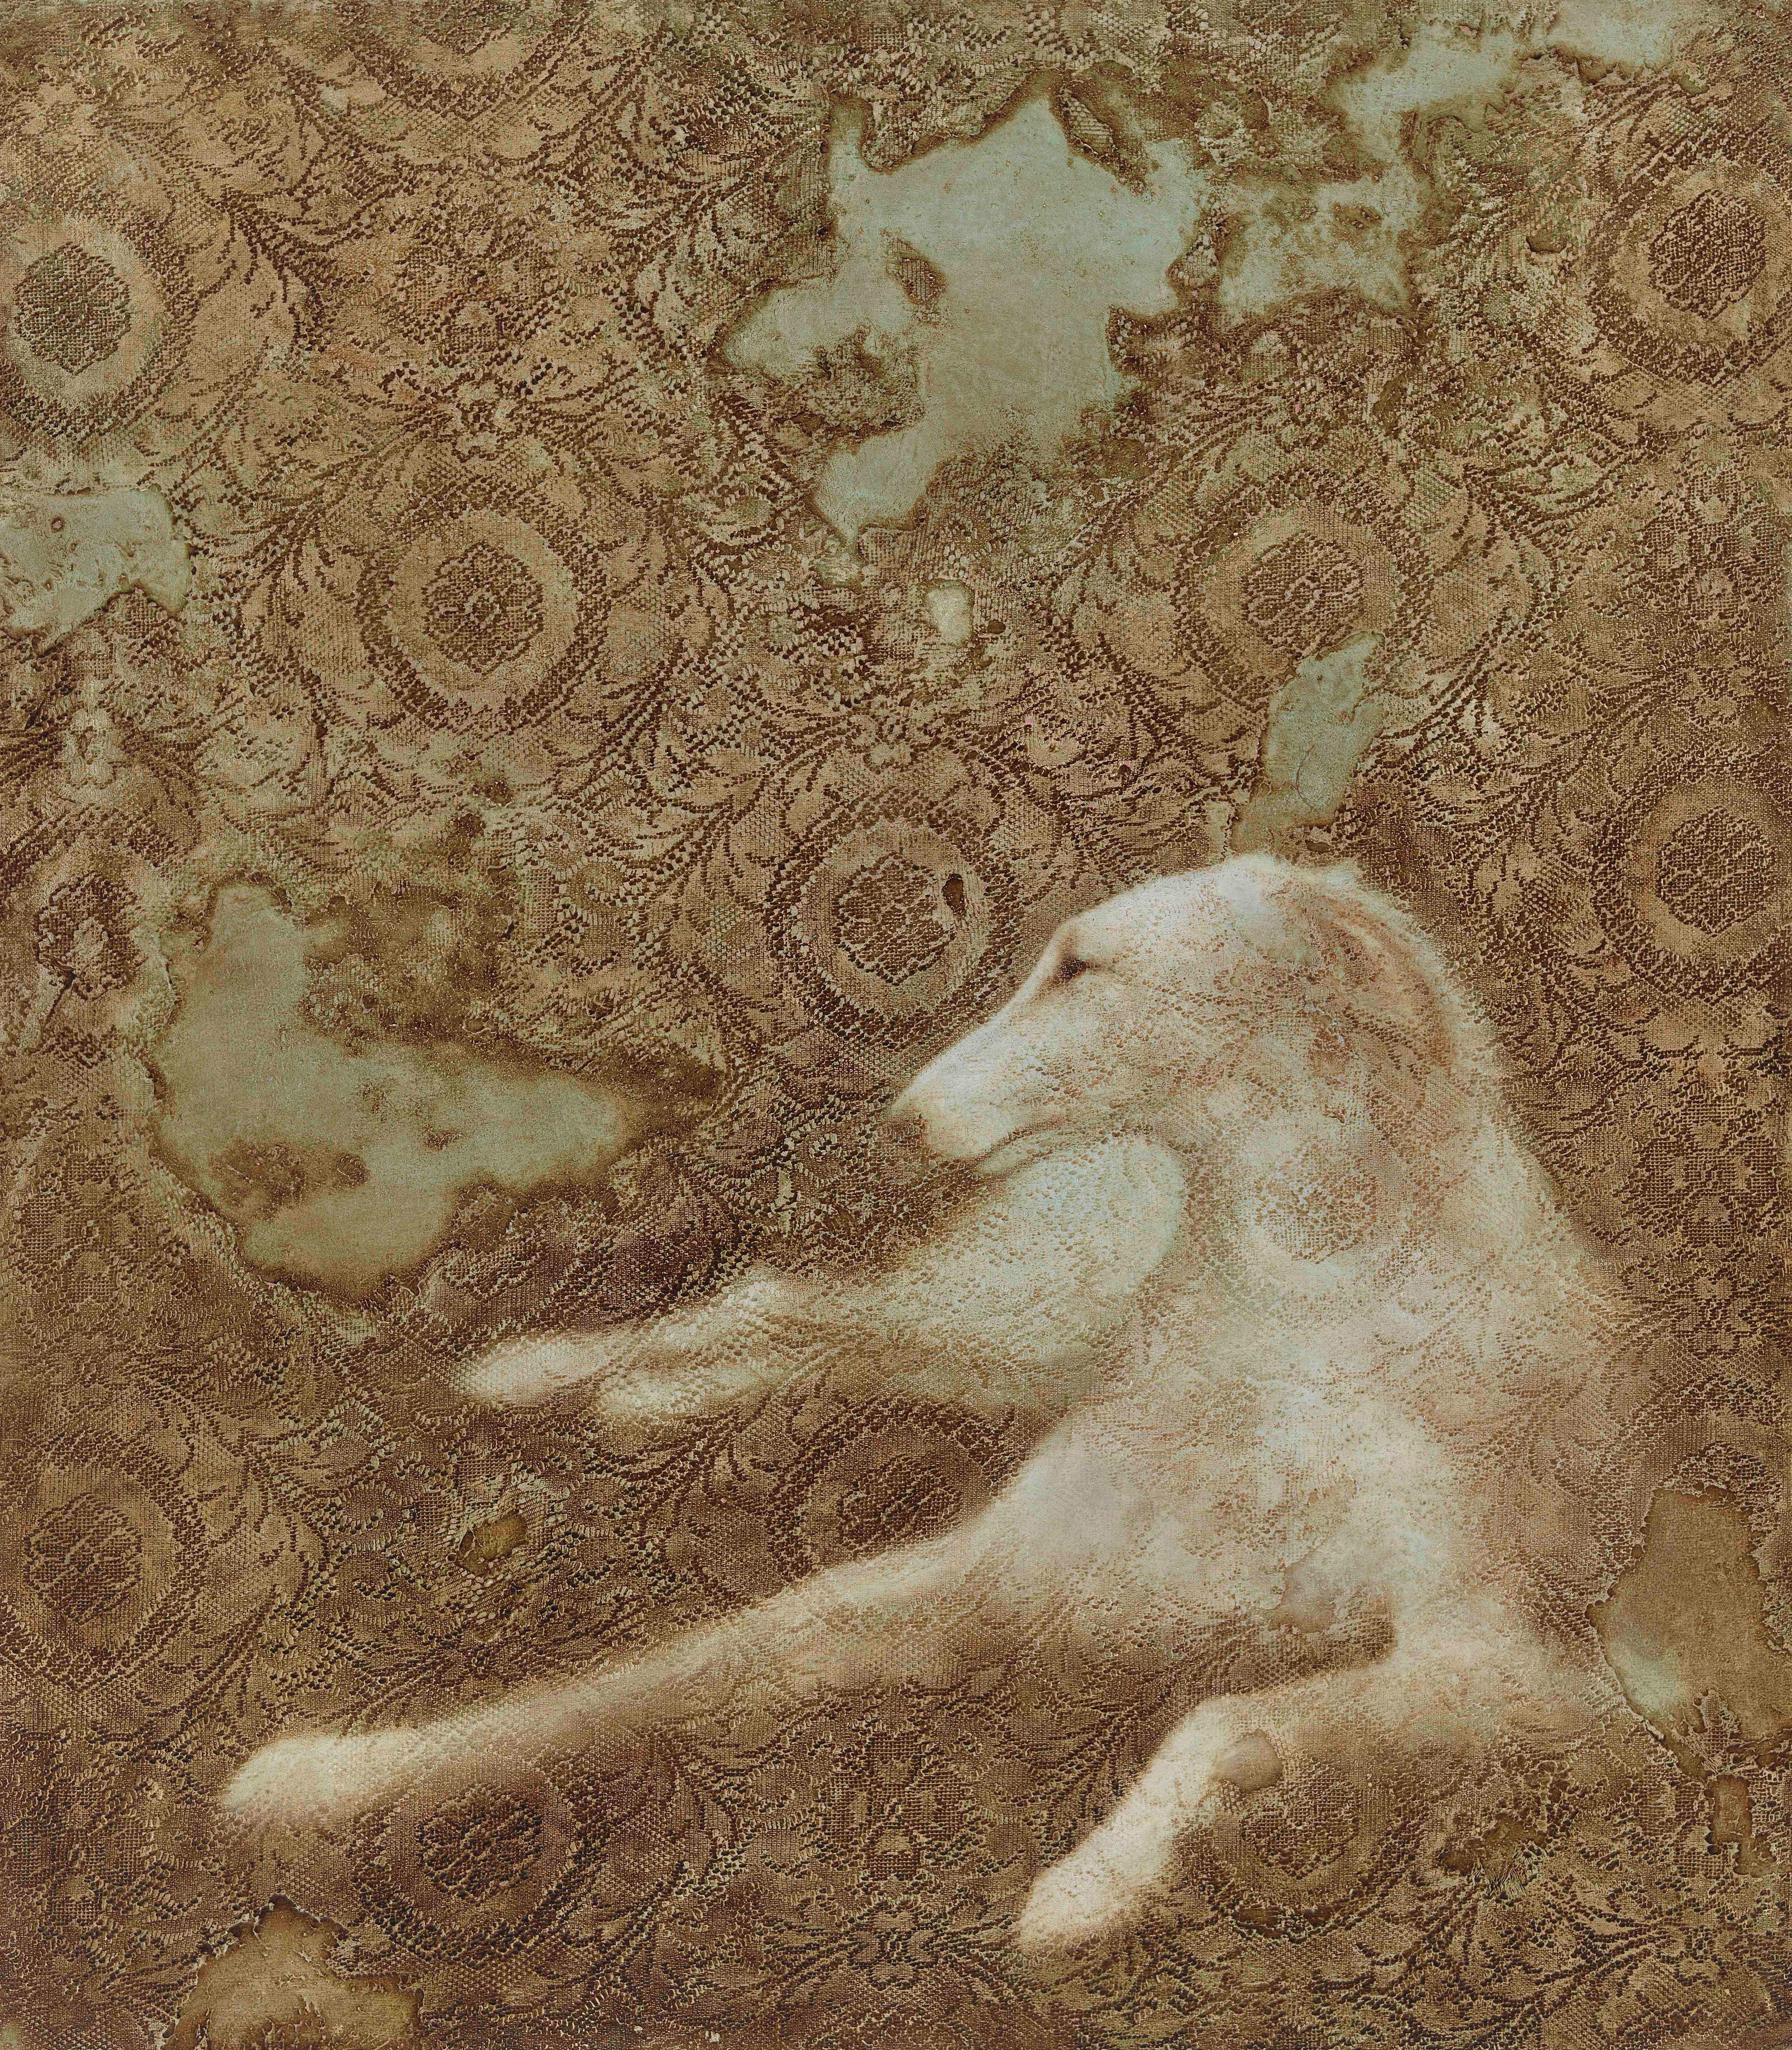 DEVOTION - naturalistic or realistic painting of dog with floral pattern